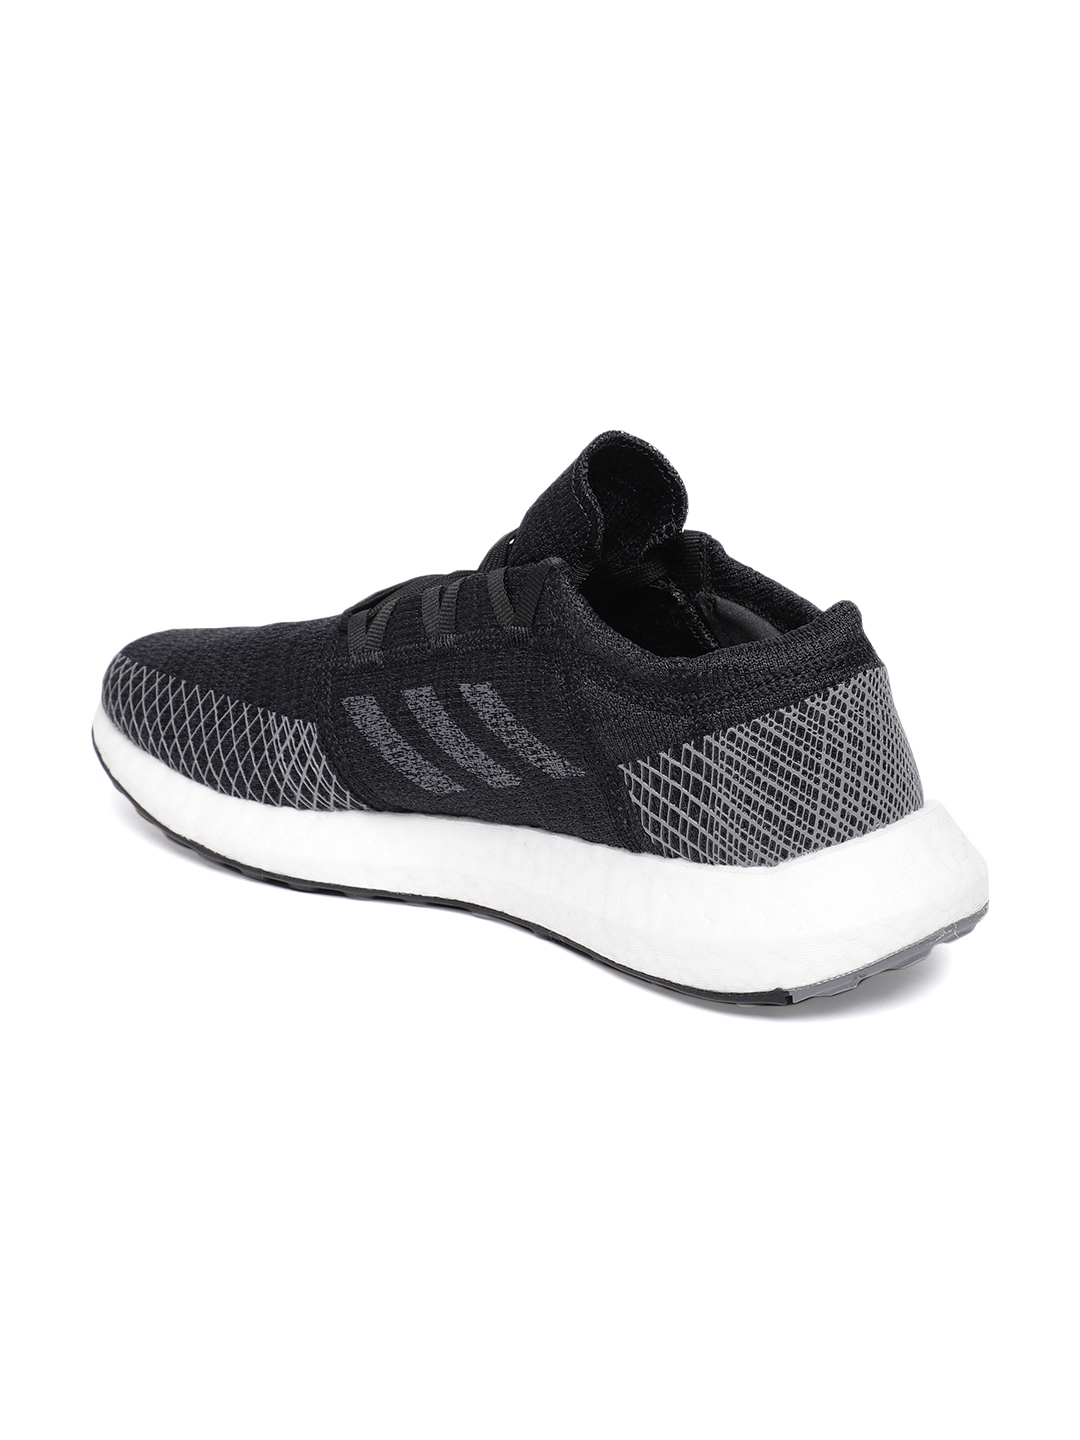 0a1ab8cb152c9 Buy ADIDAS Women Black PUREBOOST GO Running Shoes - Sports Shoes for ...